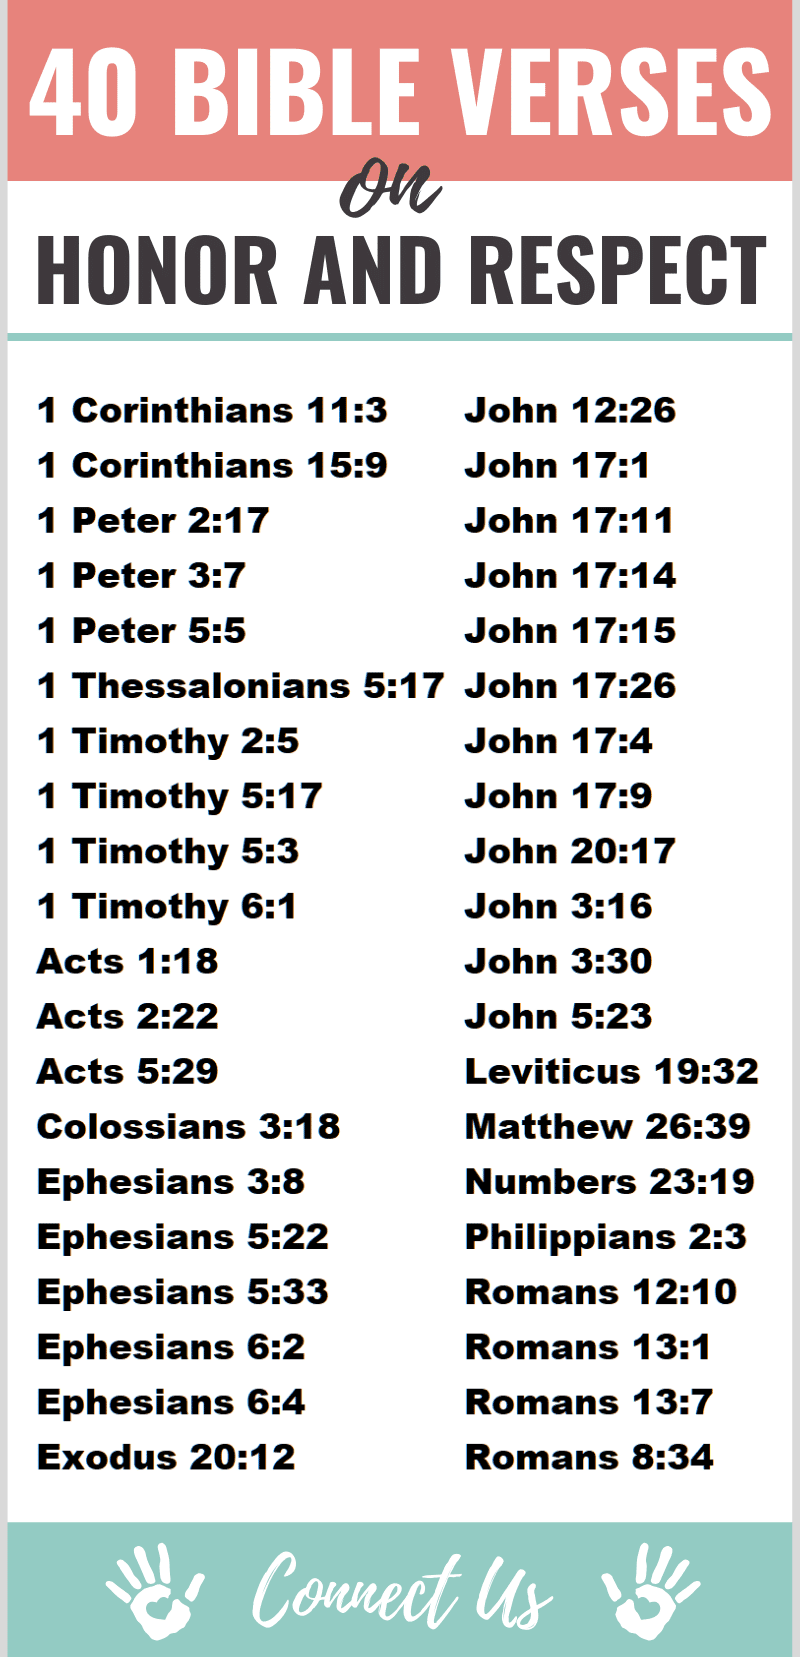 Bible Verses on Honor and Respect